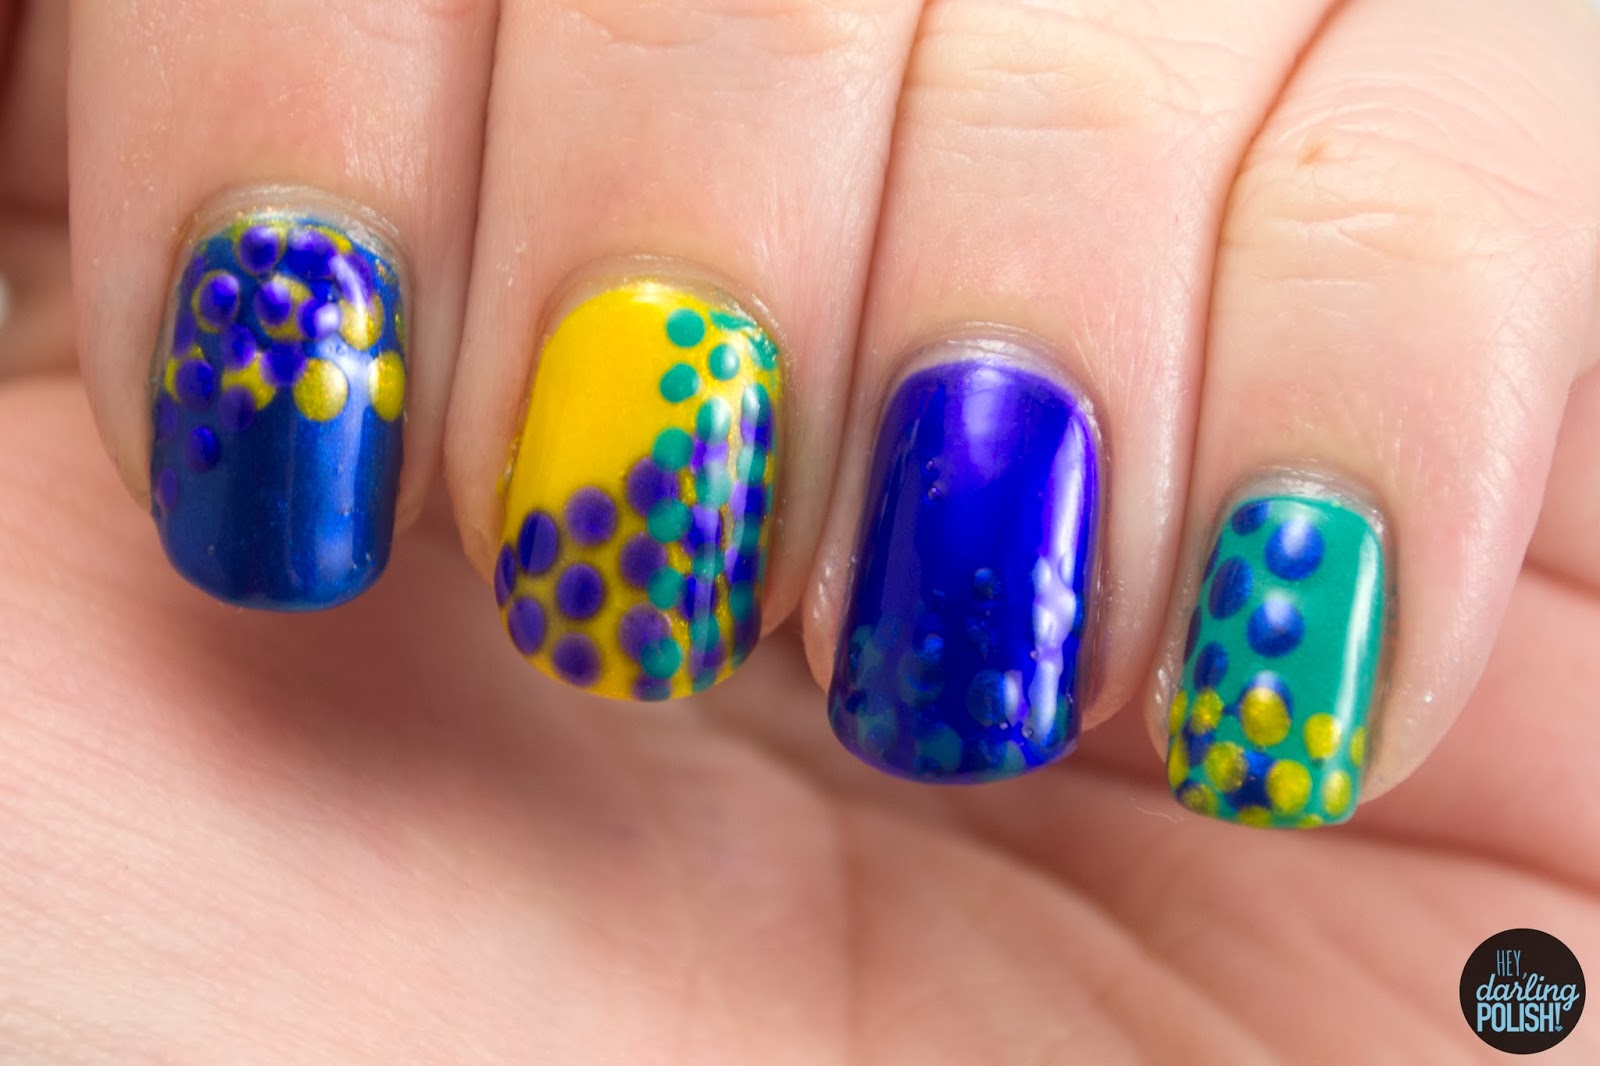 nails, nail art, nail polish, polish, dots, polka dots, golden oldie thursdays, hey darling polish